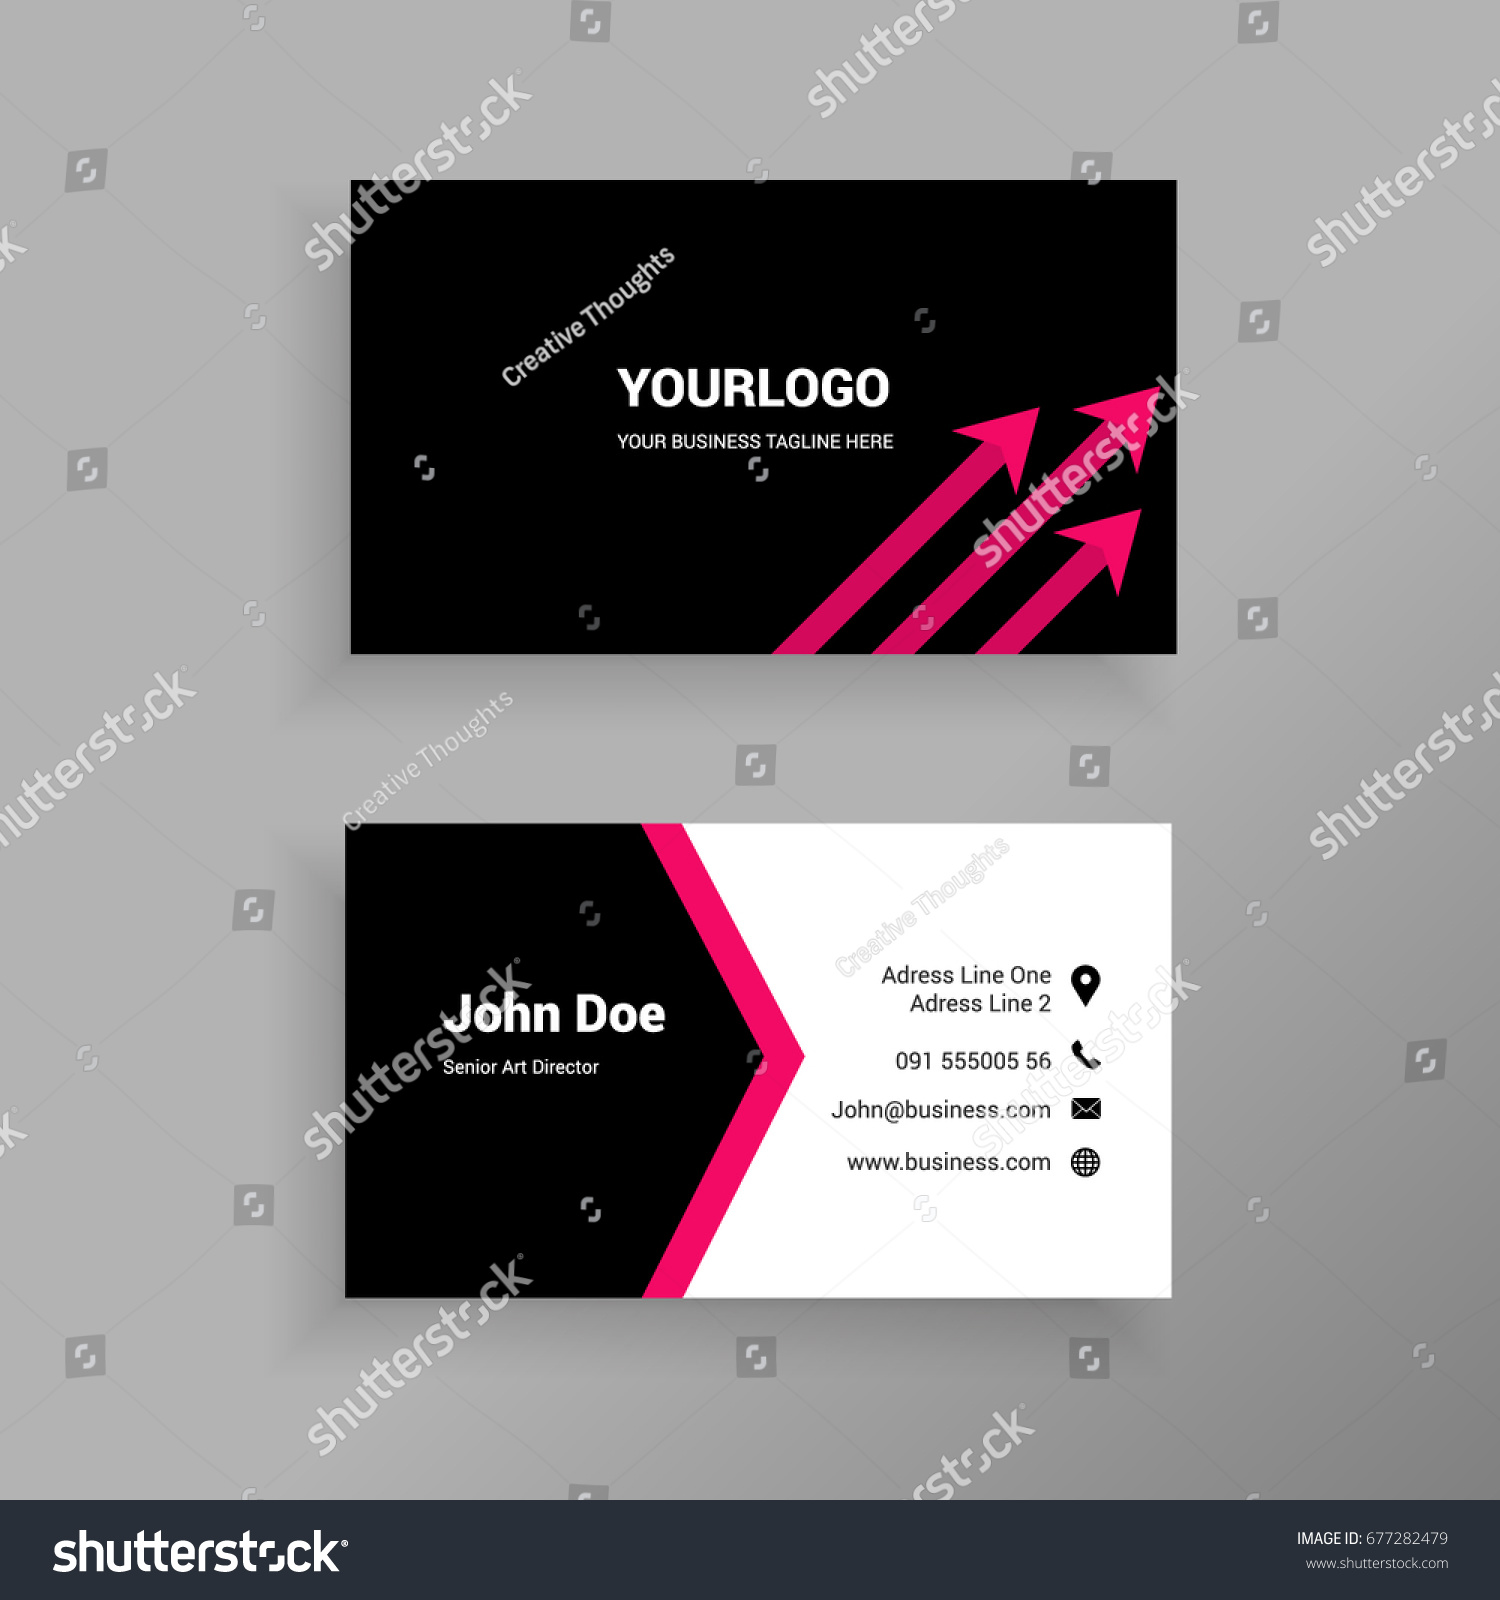 Red Arrows Minimal Trendy Business Card Stock Vector 677282479 ...